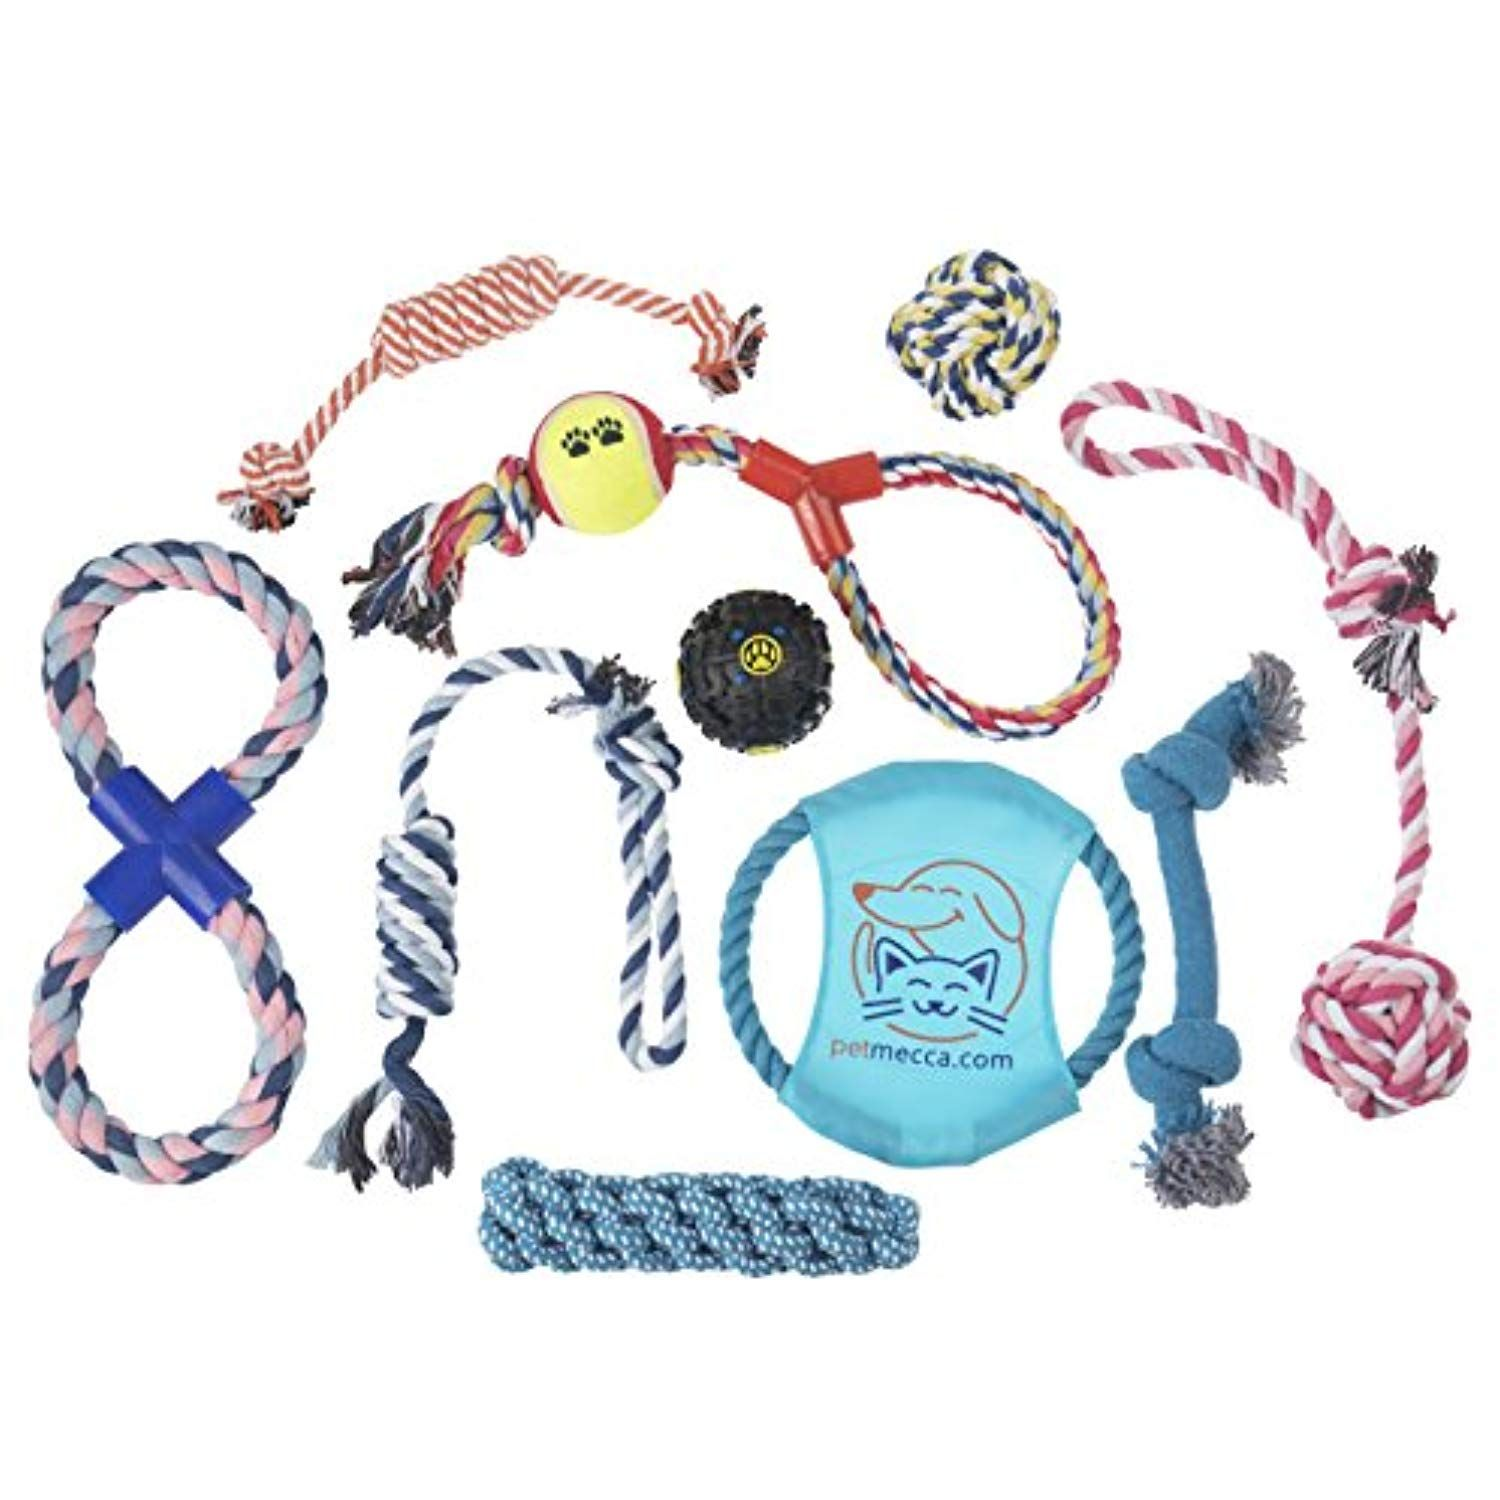 Dog Chew Toys For Small and Large Dogs Includes Tough